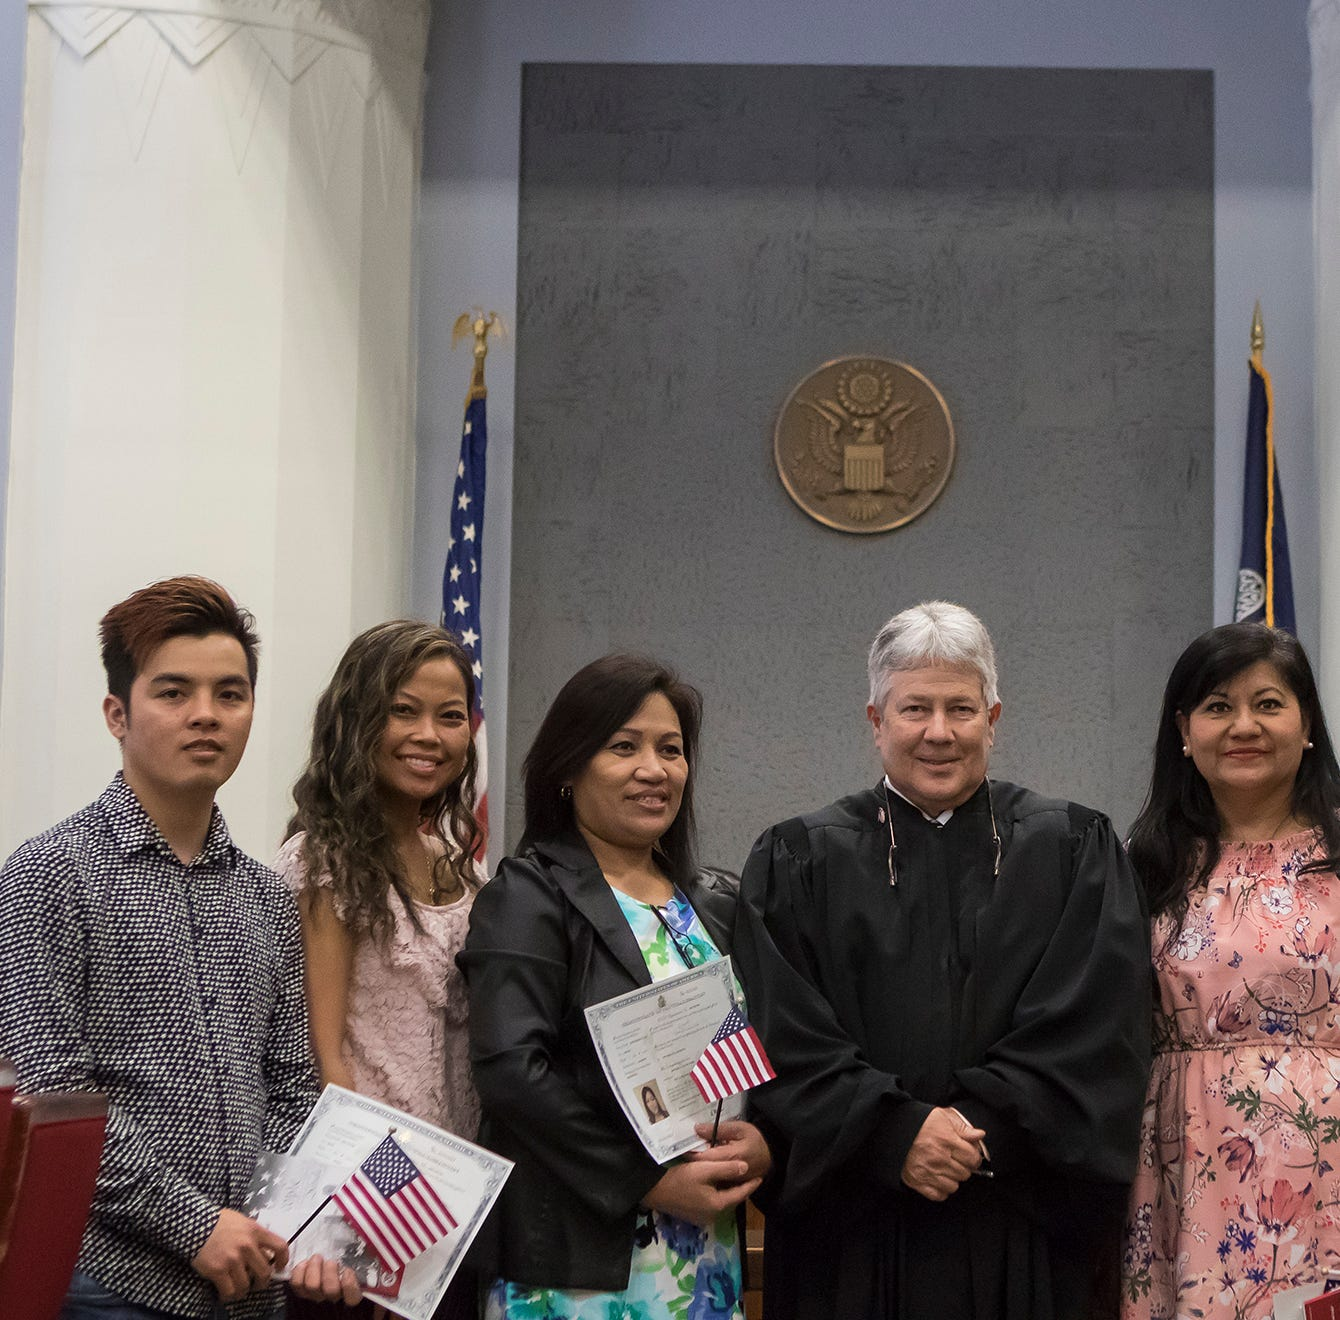 United States District Judge for the Western District of Louisiana Terry Doughty, center, stands with the six new United States citizens after a naturalization ceremony in the federal courthouse in downtown Monroe, La. on April 10.